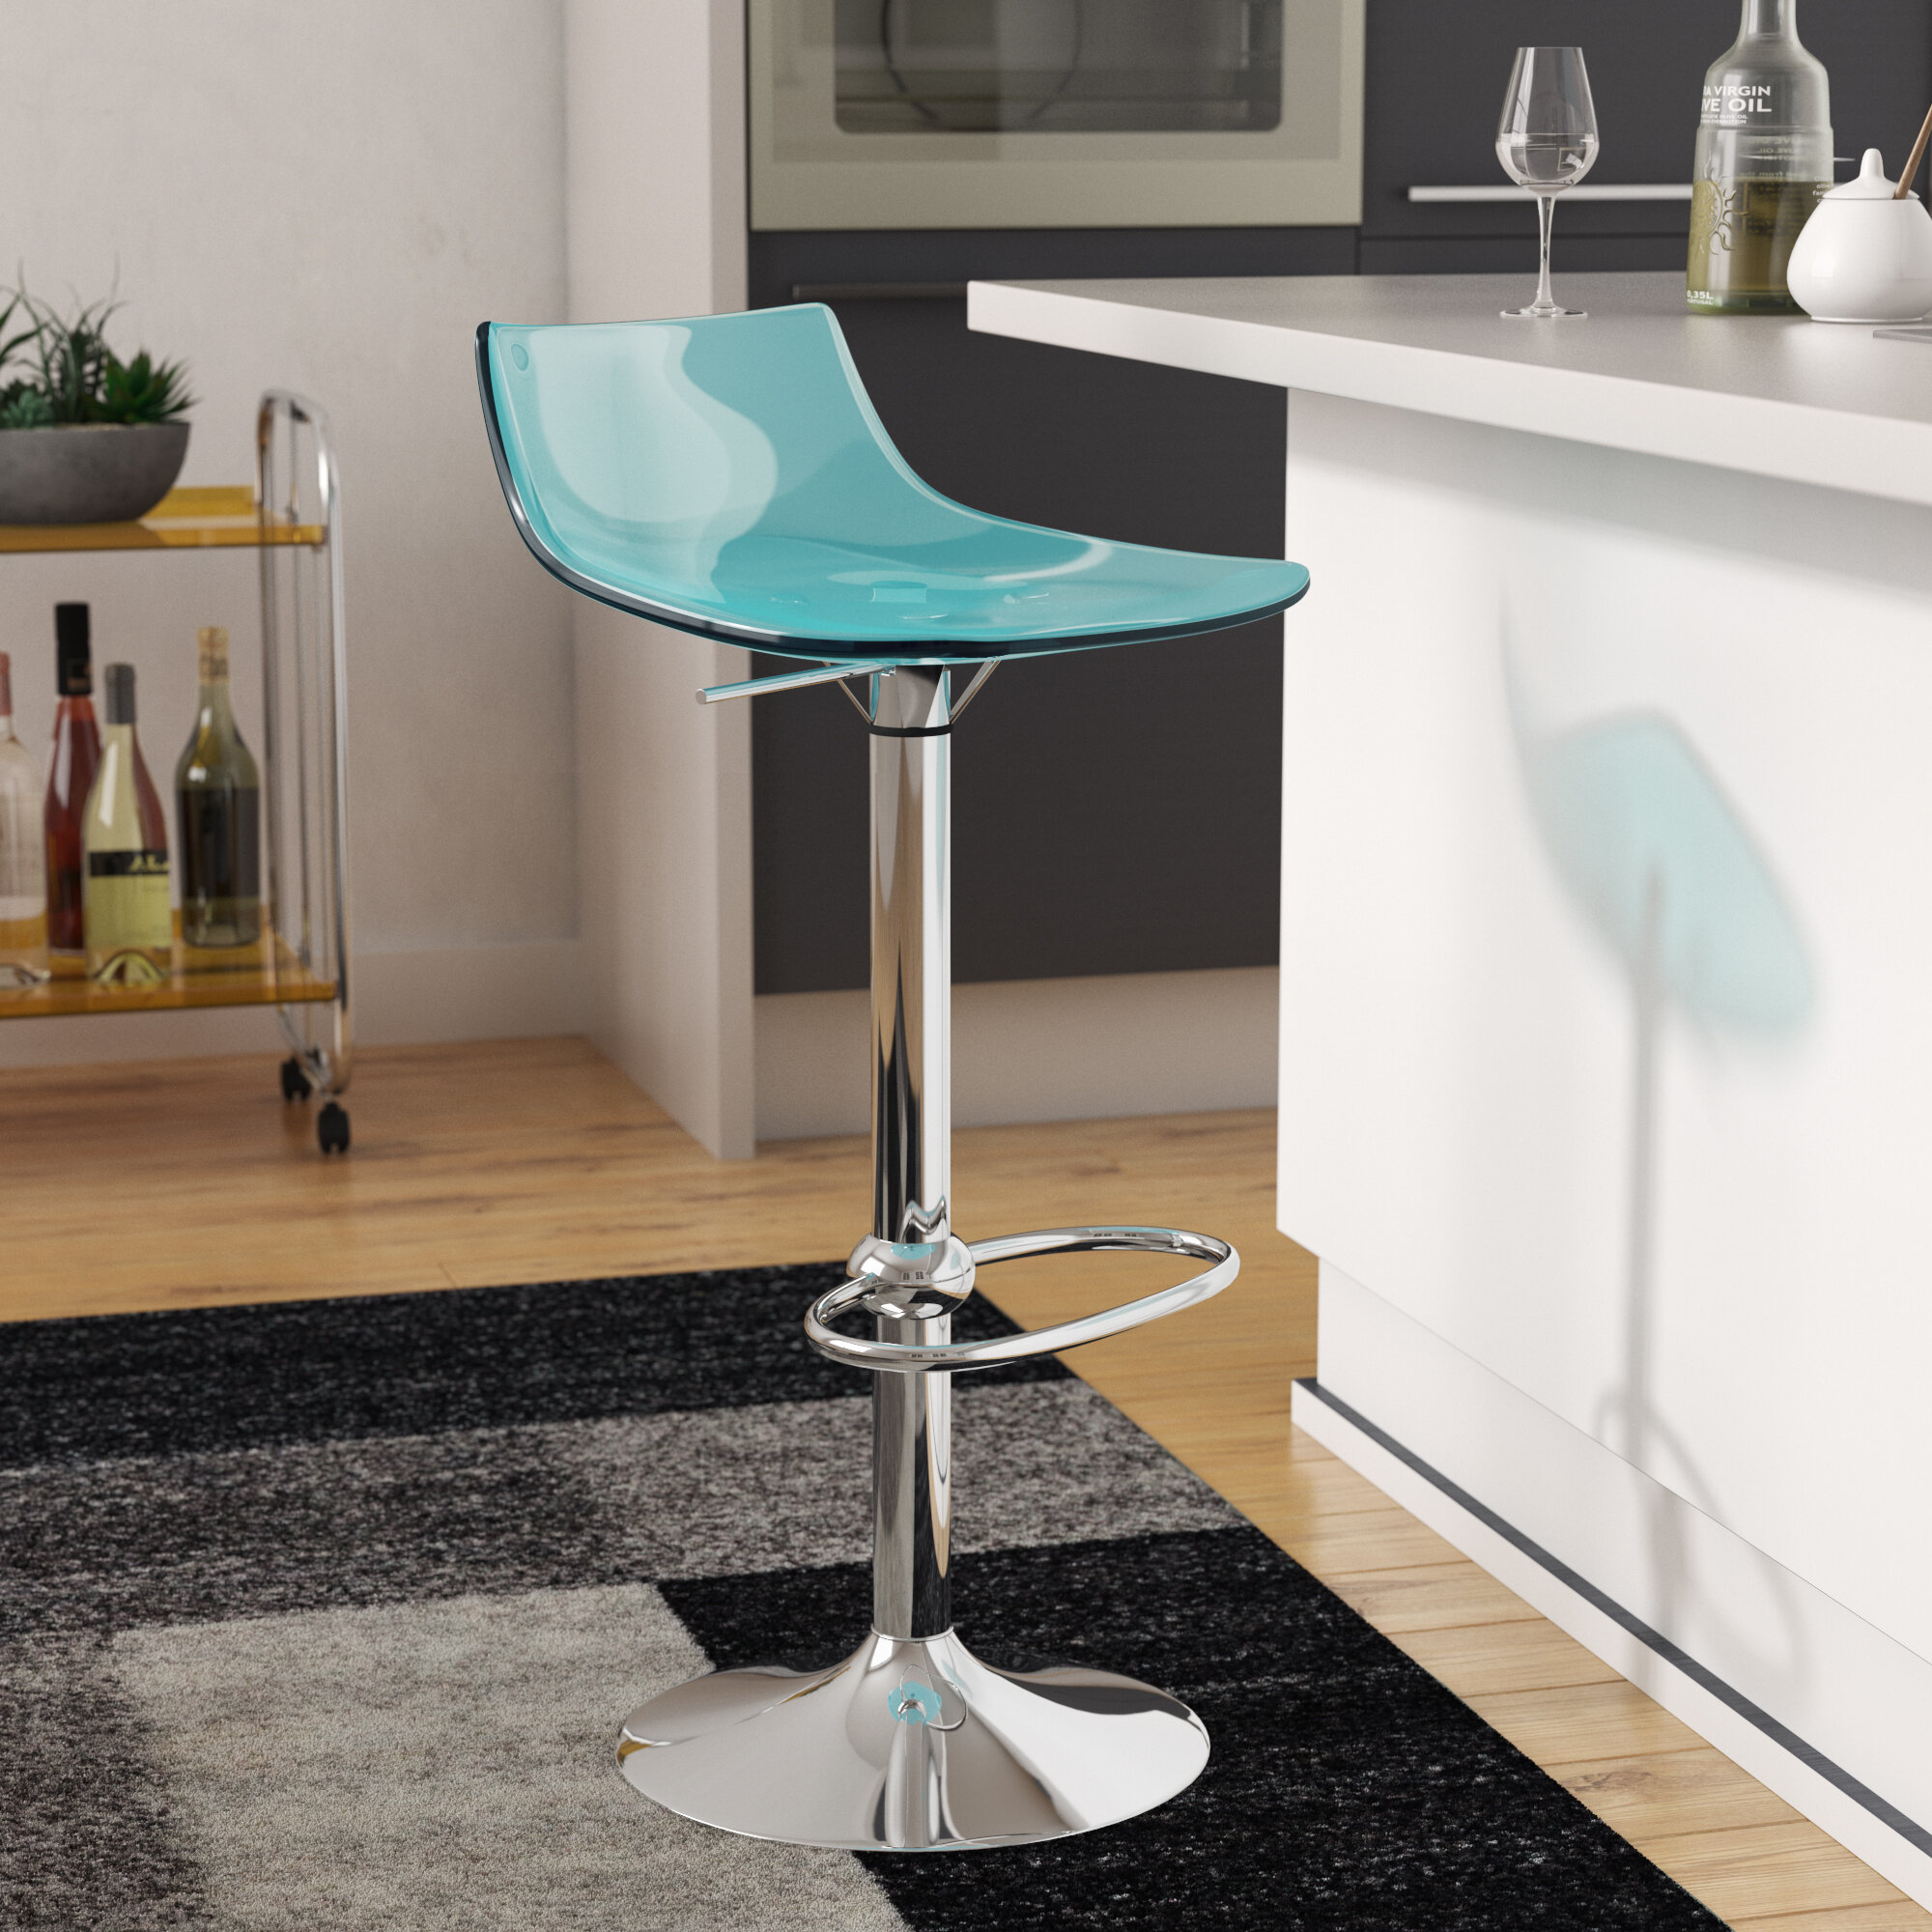 Superb Elizabeth Street Adjustable Height Swivel Bar Stool Ocoug Best Dining Table And Chair Ideas Images Ocougorg